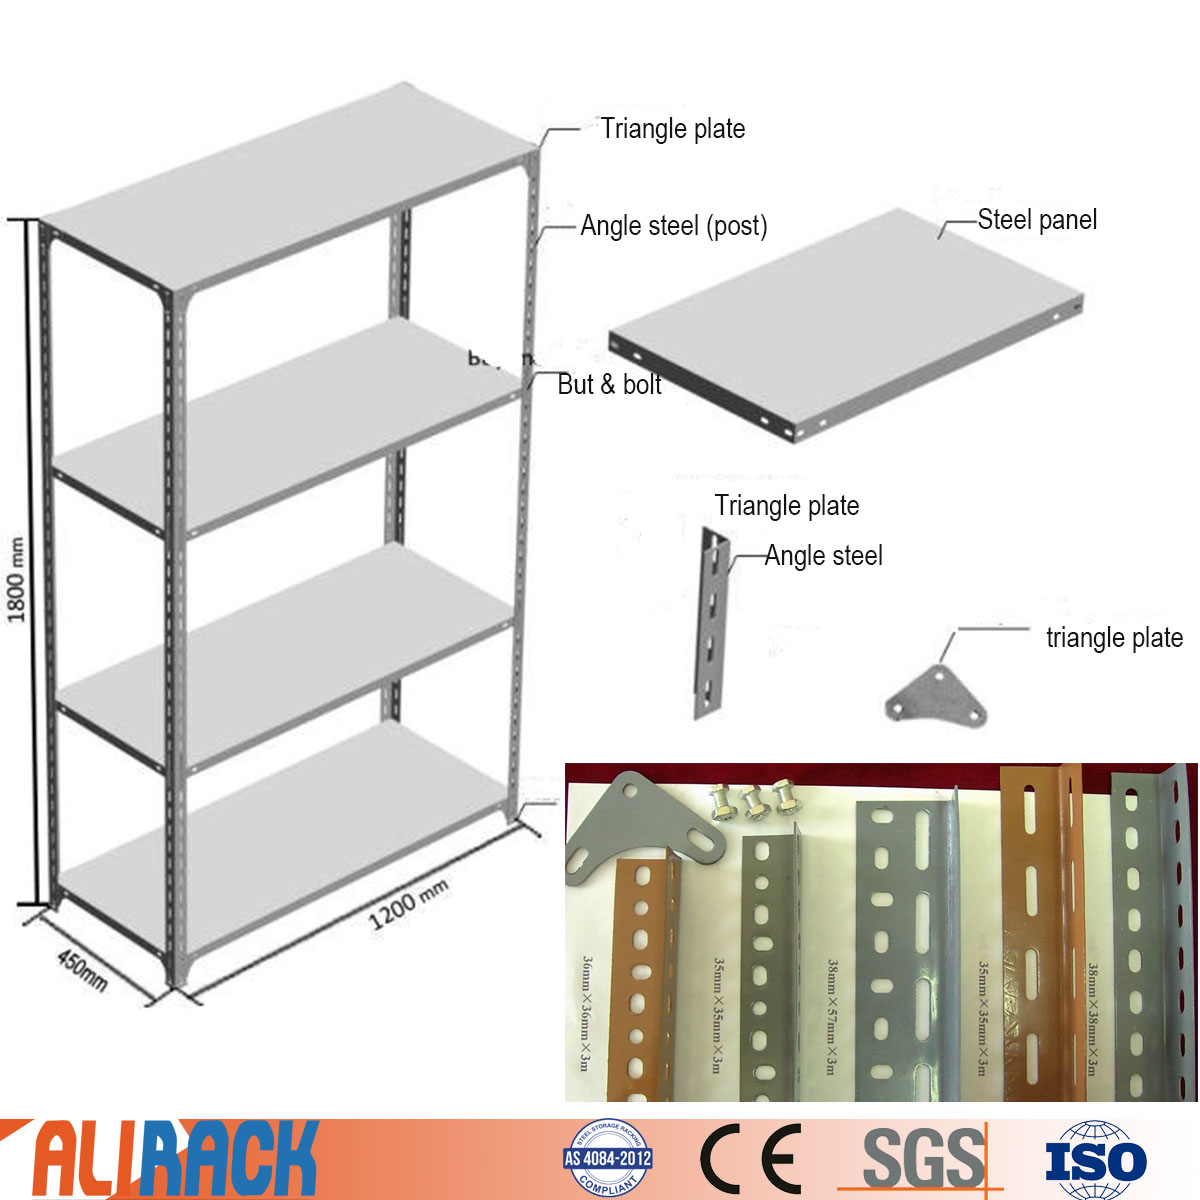 Mdf Wiring Diagram Library 84 Cj7 Computer Ali Racking Slotted Angle Steel Shelving With Shelves Light Duty Shelf